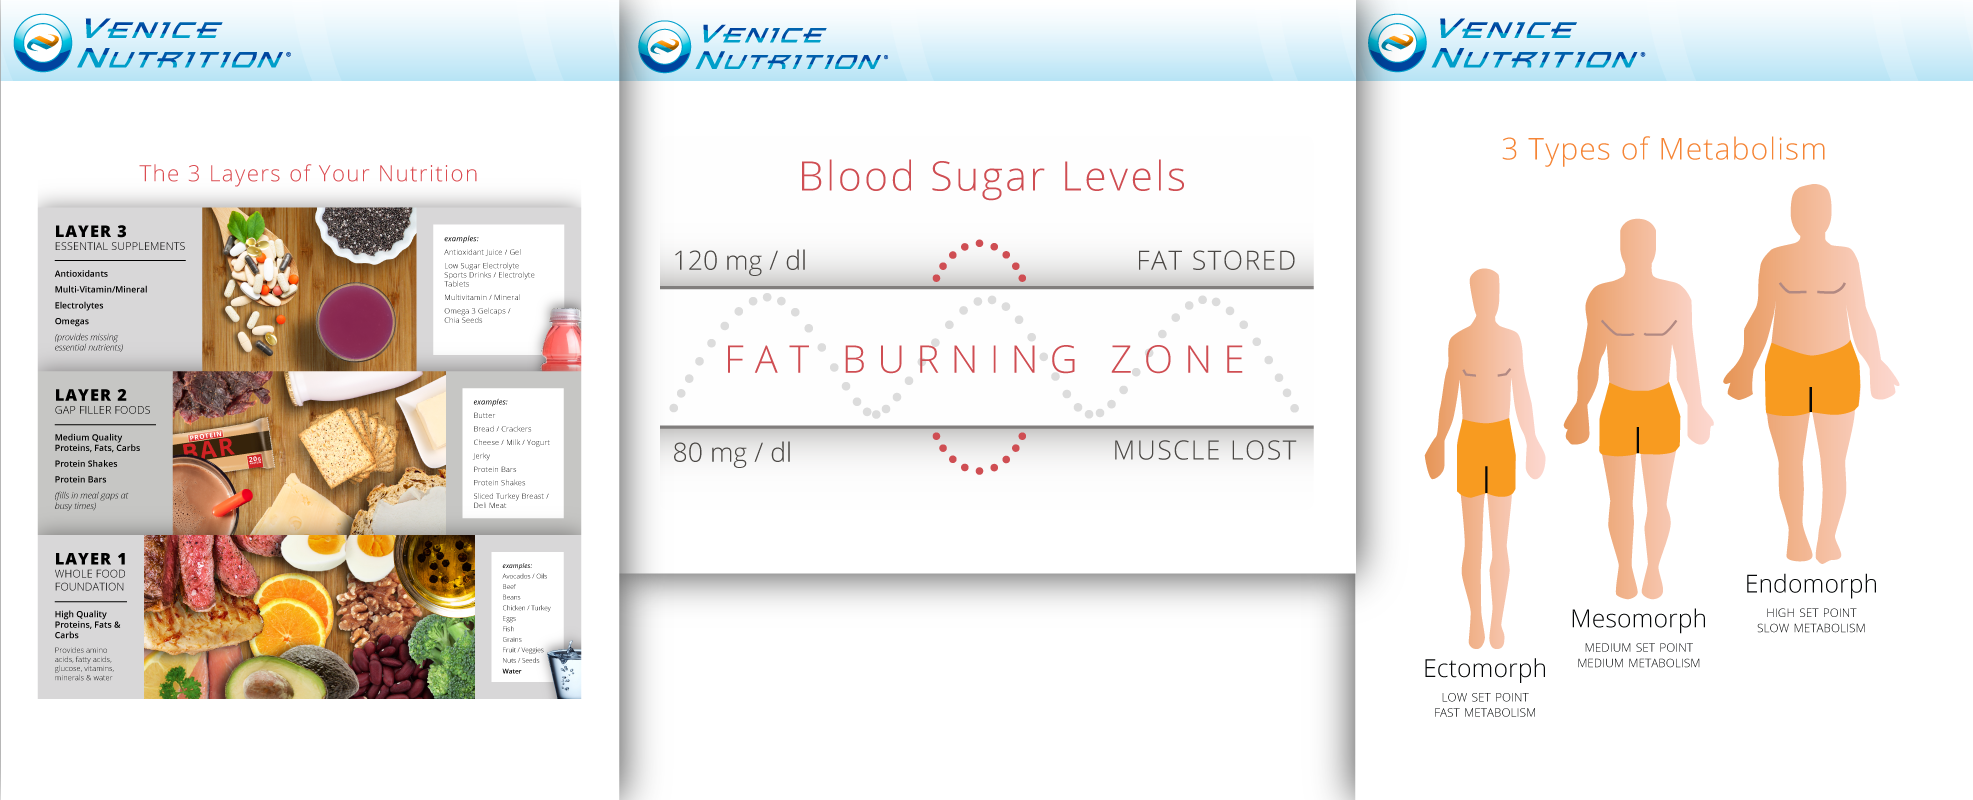 Venice Nutrition Marketing Material